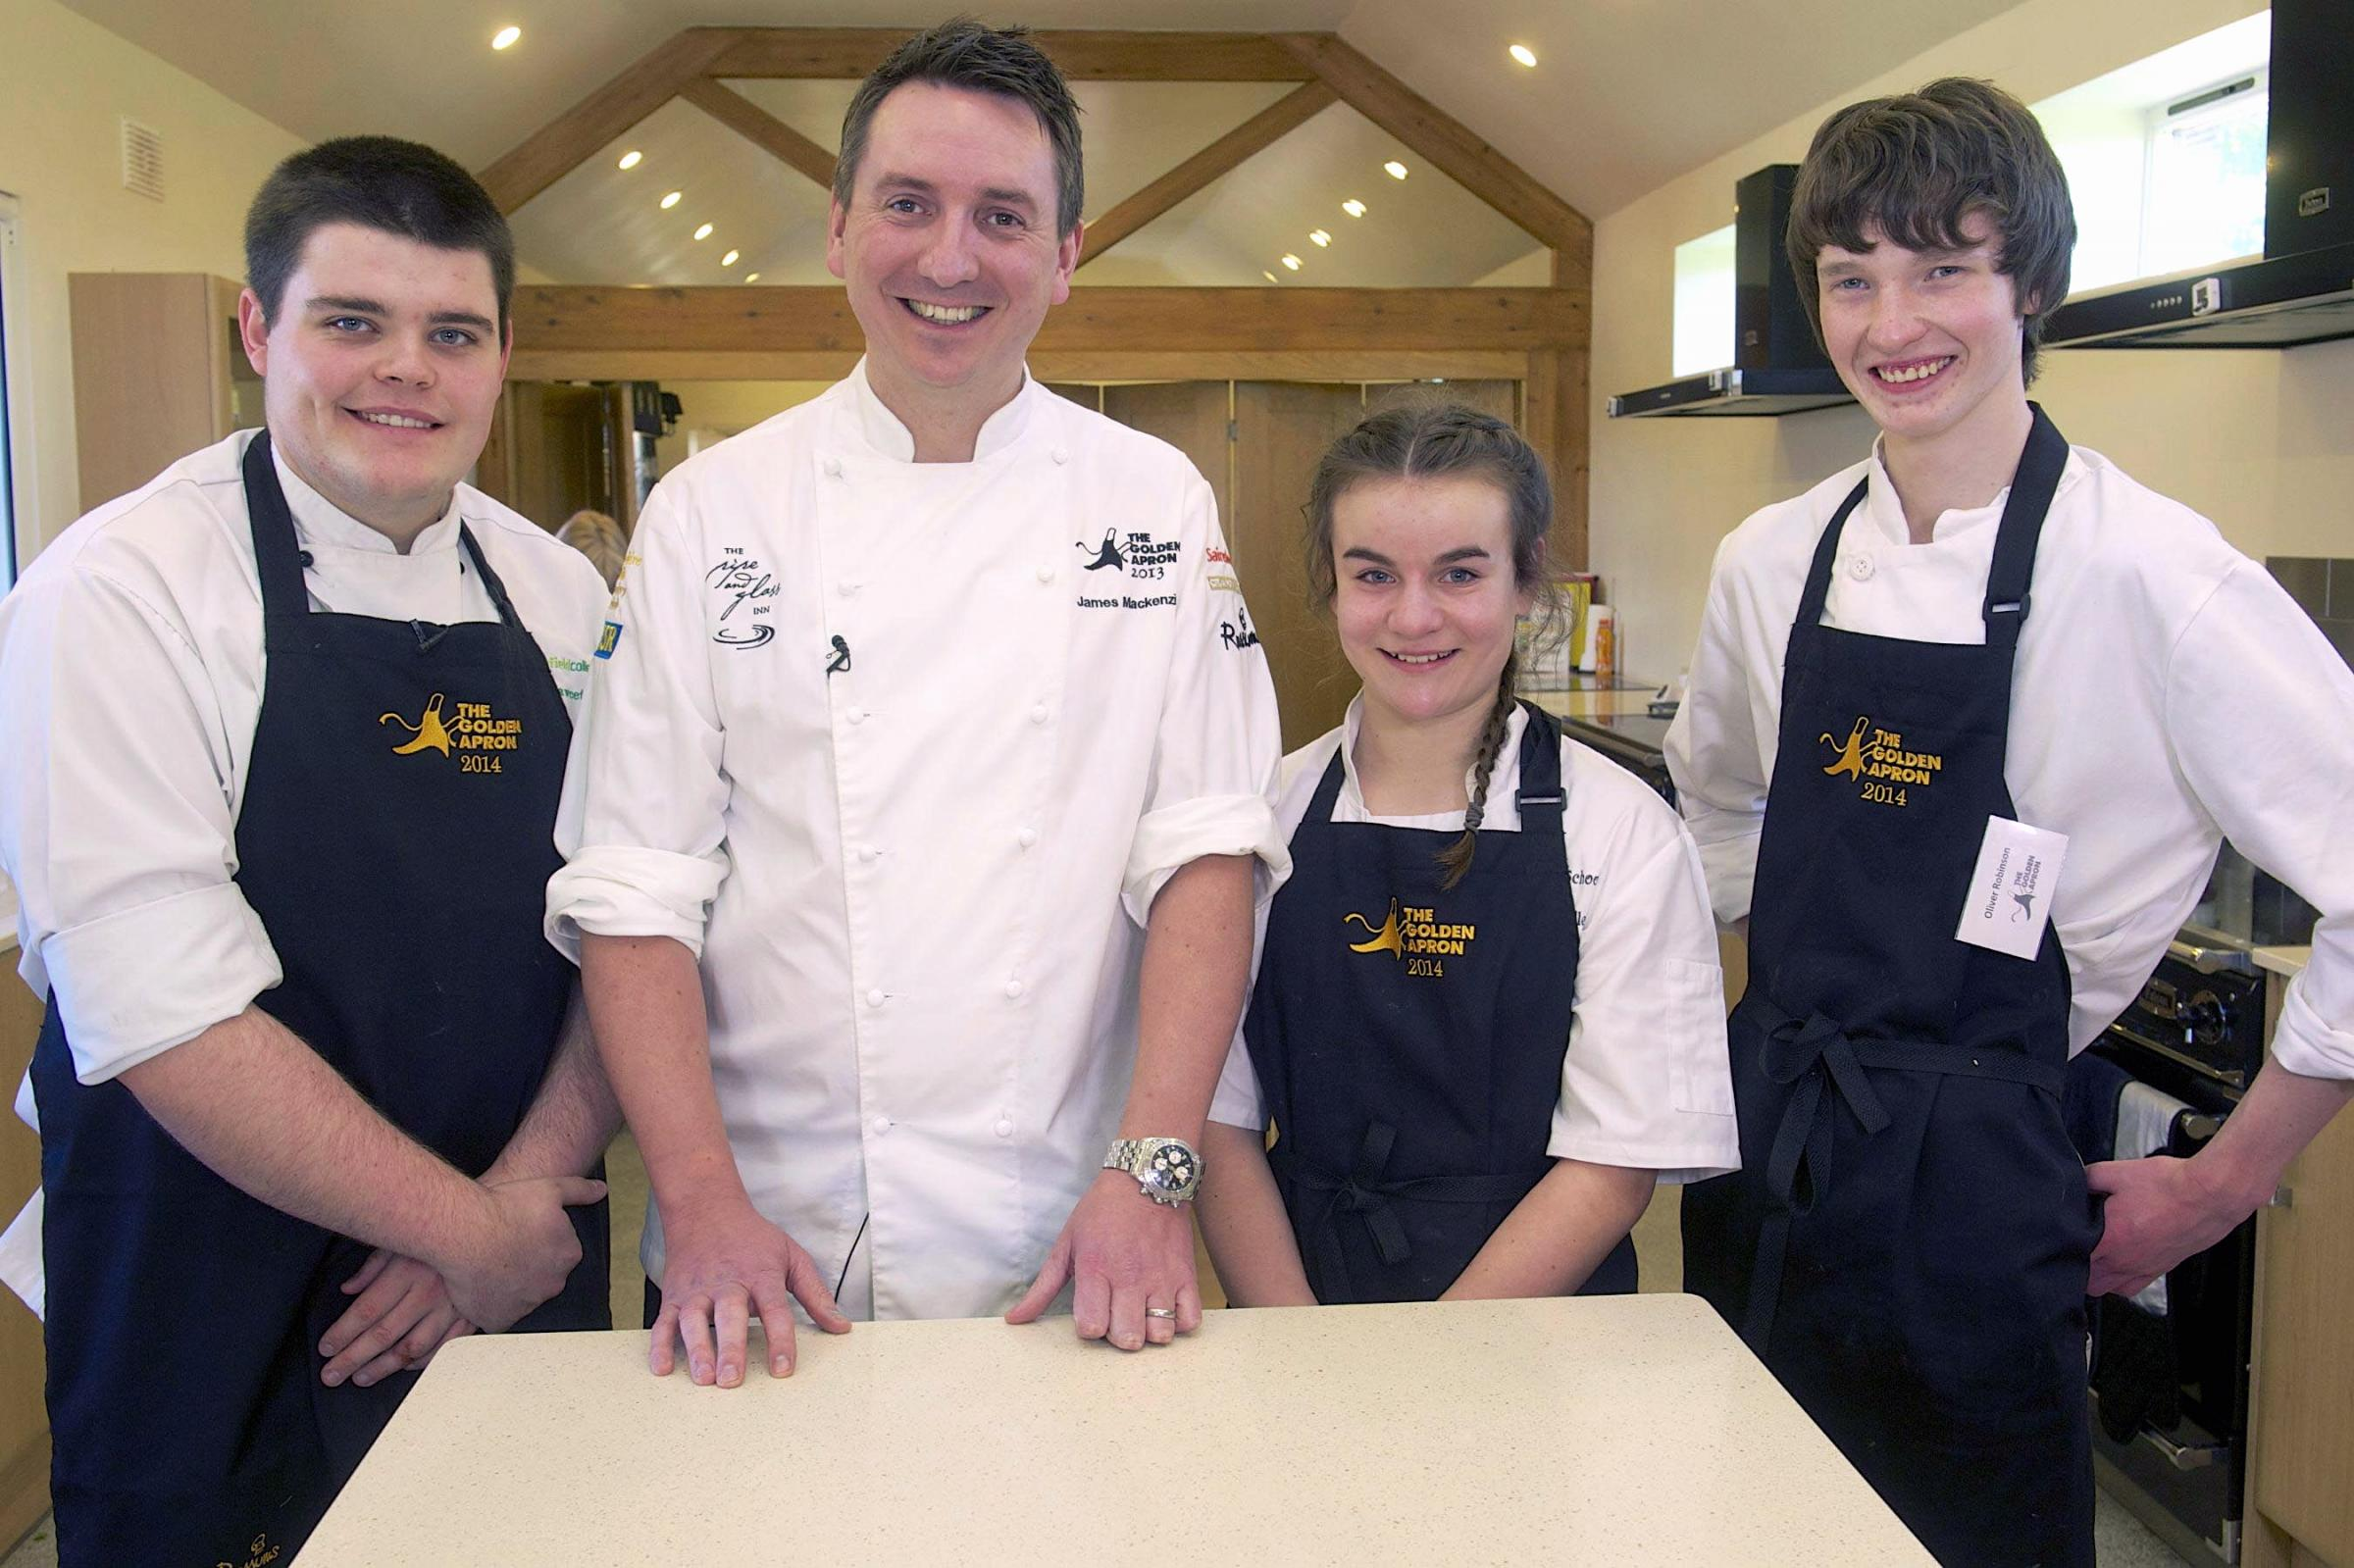 Otley's Oliver Robinson, far right, with chef James Mackenzie, of the Michelin starred Pipe and Glass, second from left, with James Fawcett and  Georgie Smithson-Brown